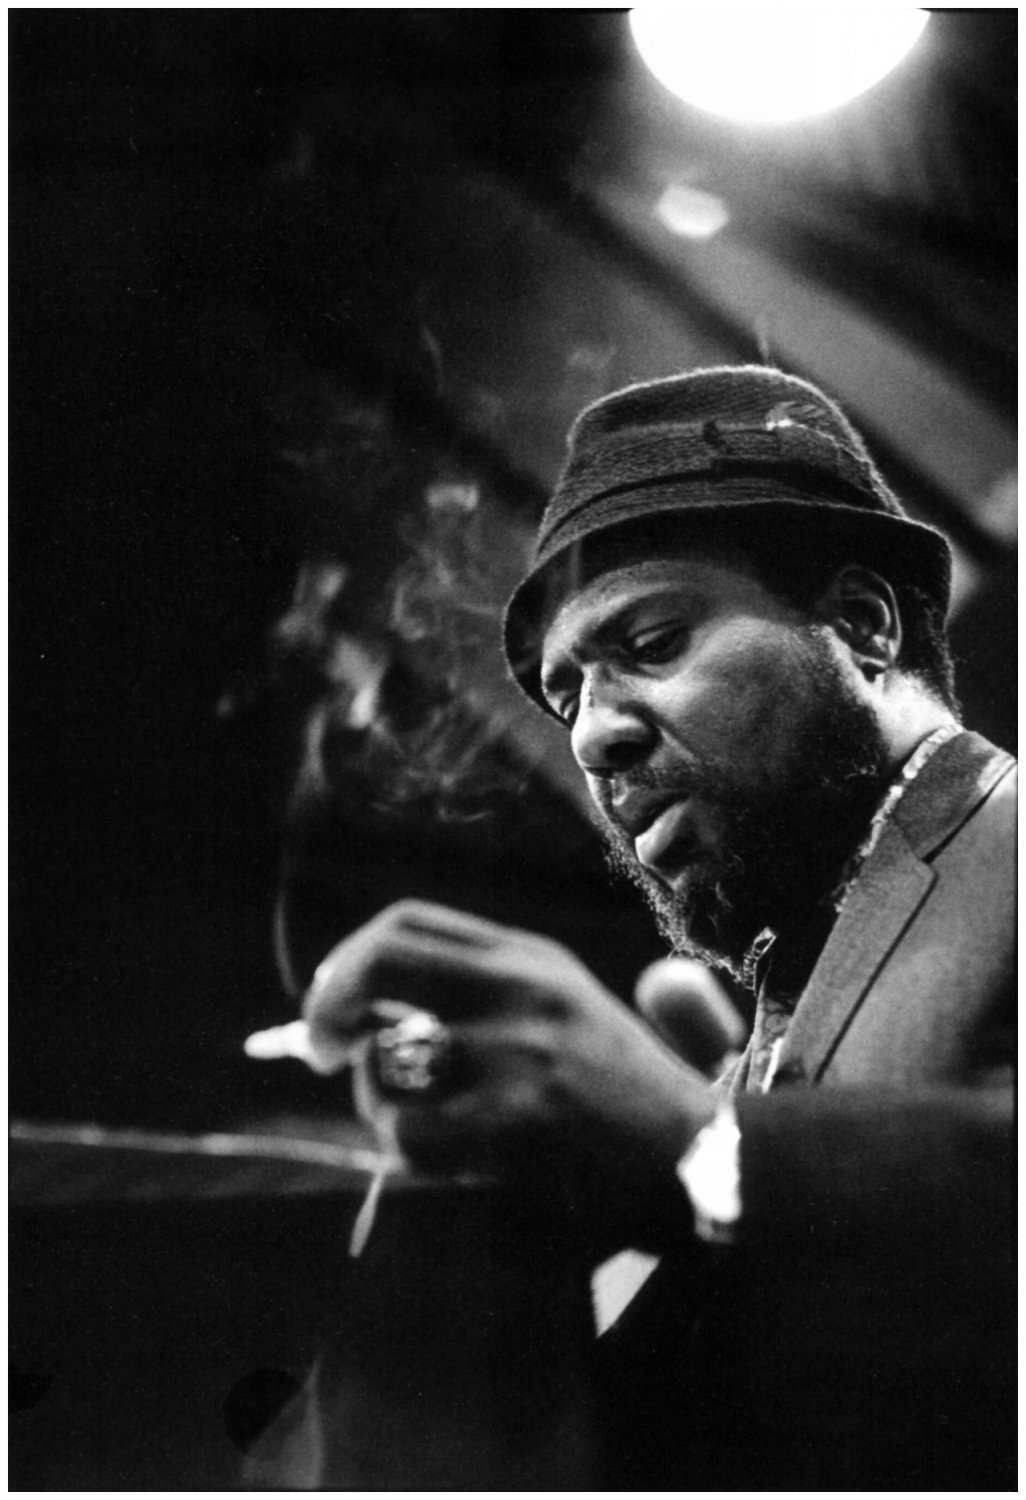 Thelonious Monk Poster Satin Photo Paper 12x17 inches